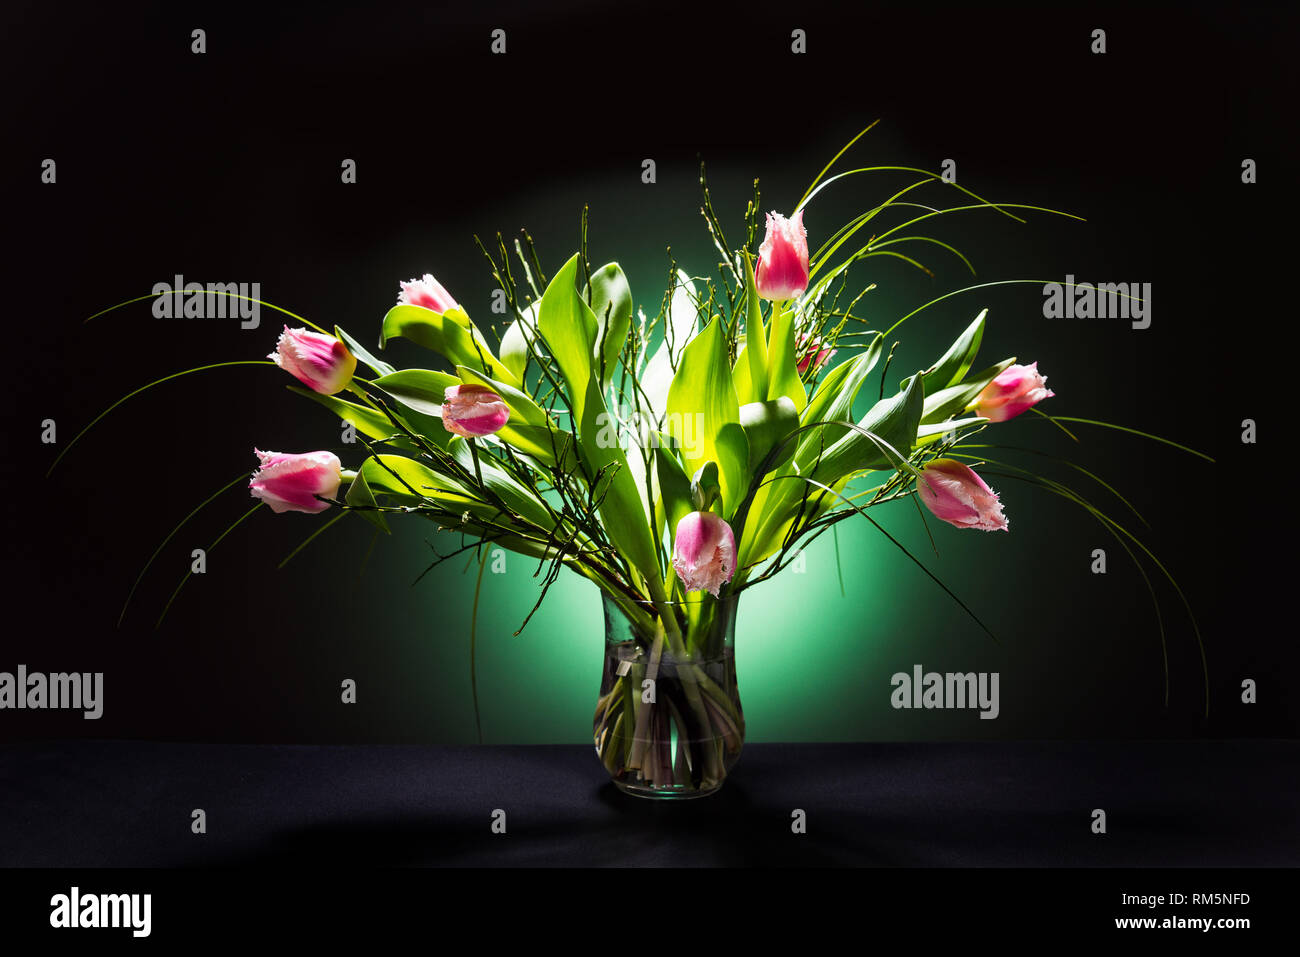 Red Tulip flowers in vase on black background Stock Photo